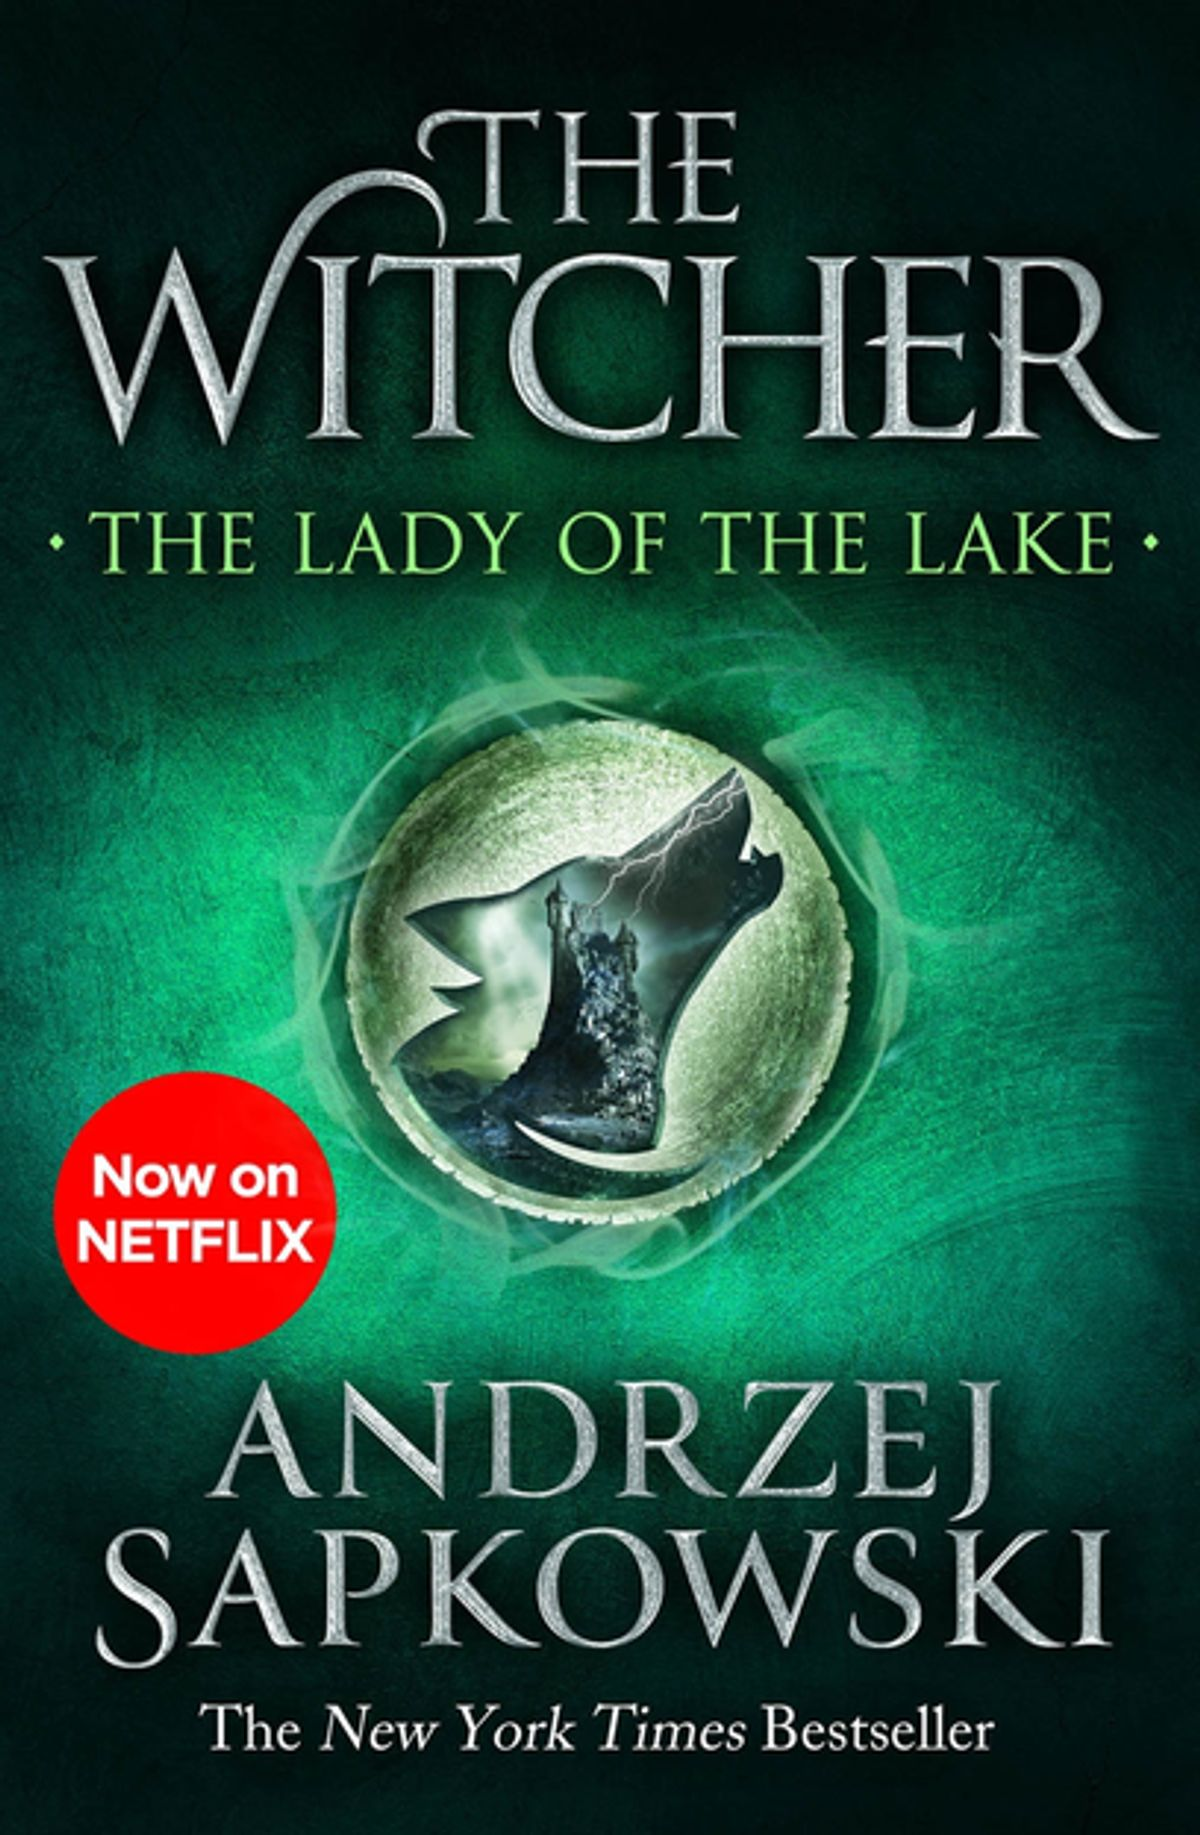 The Lady of the Lake cover - The Witcher by Andrzej Sapkowski